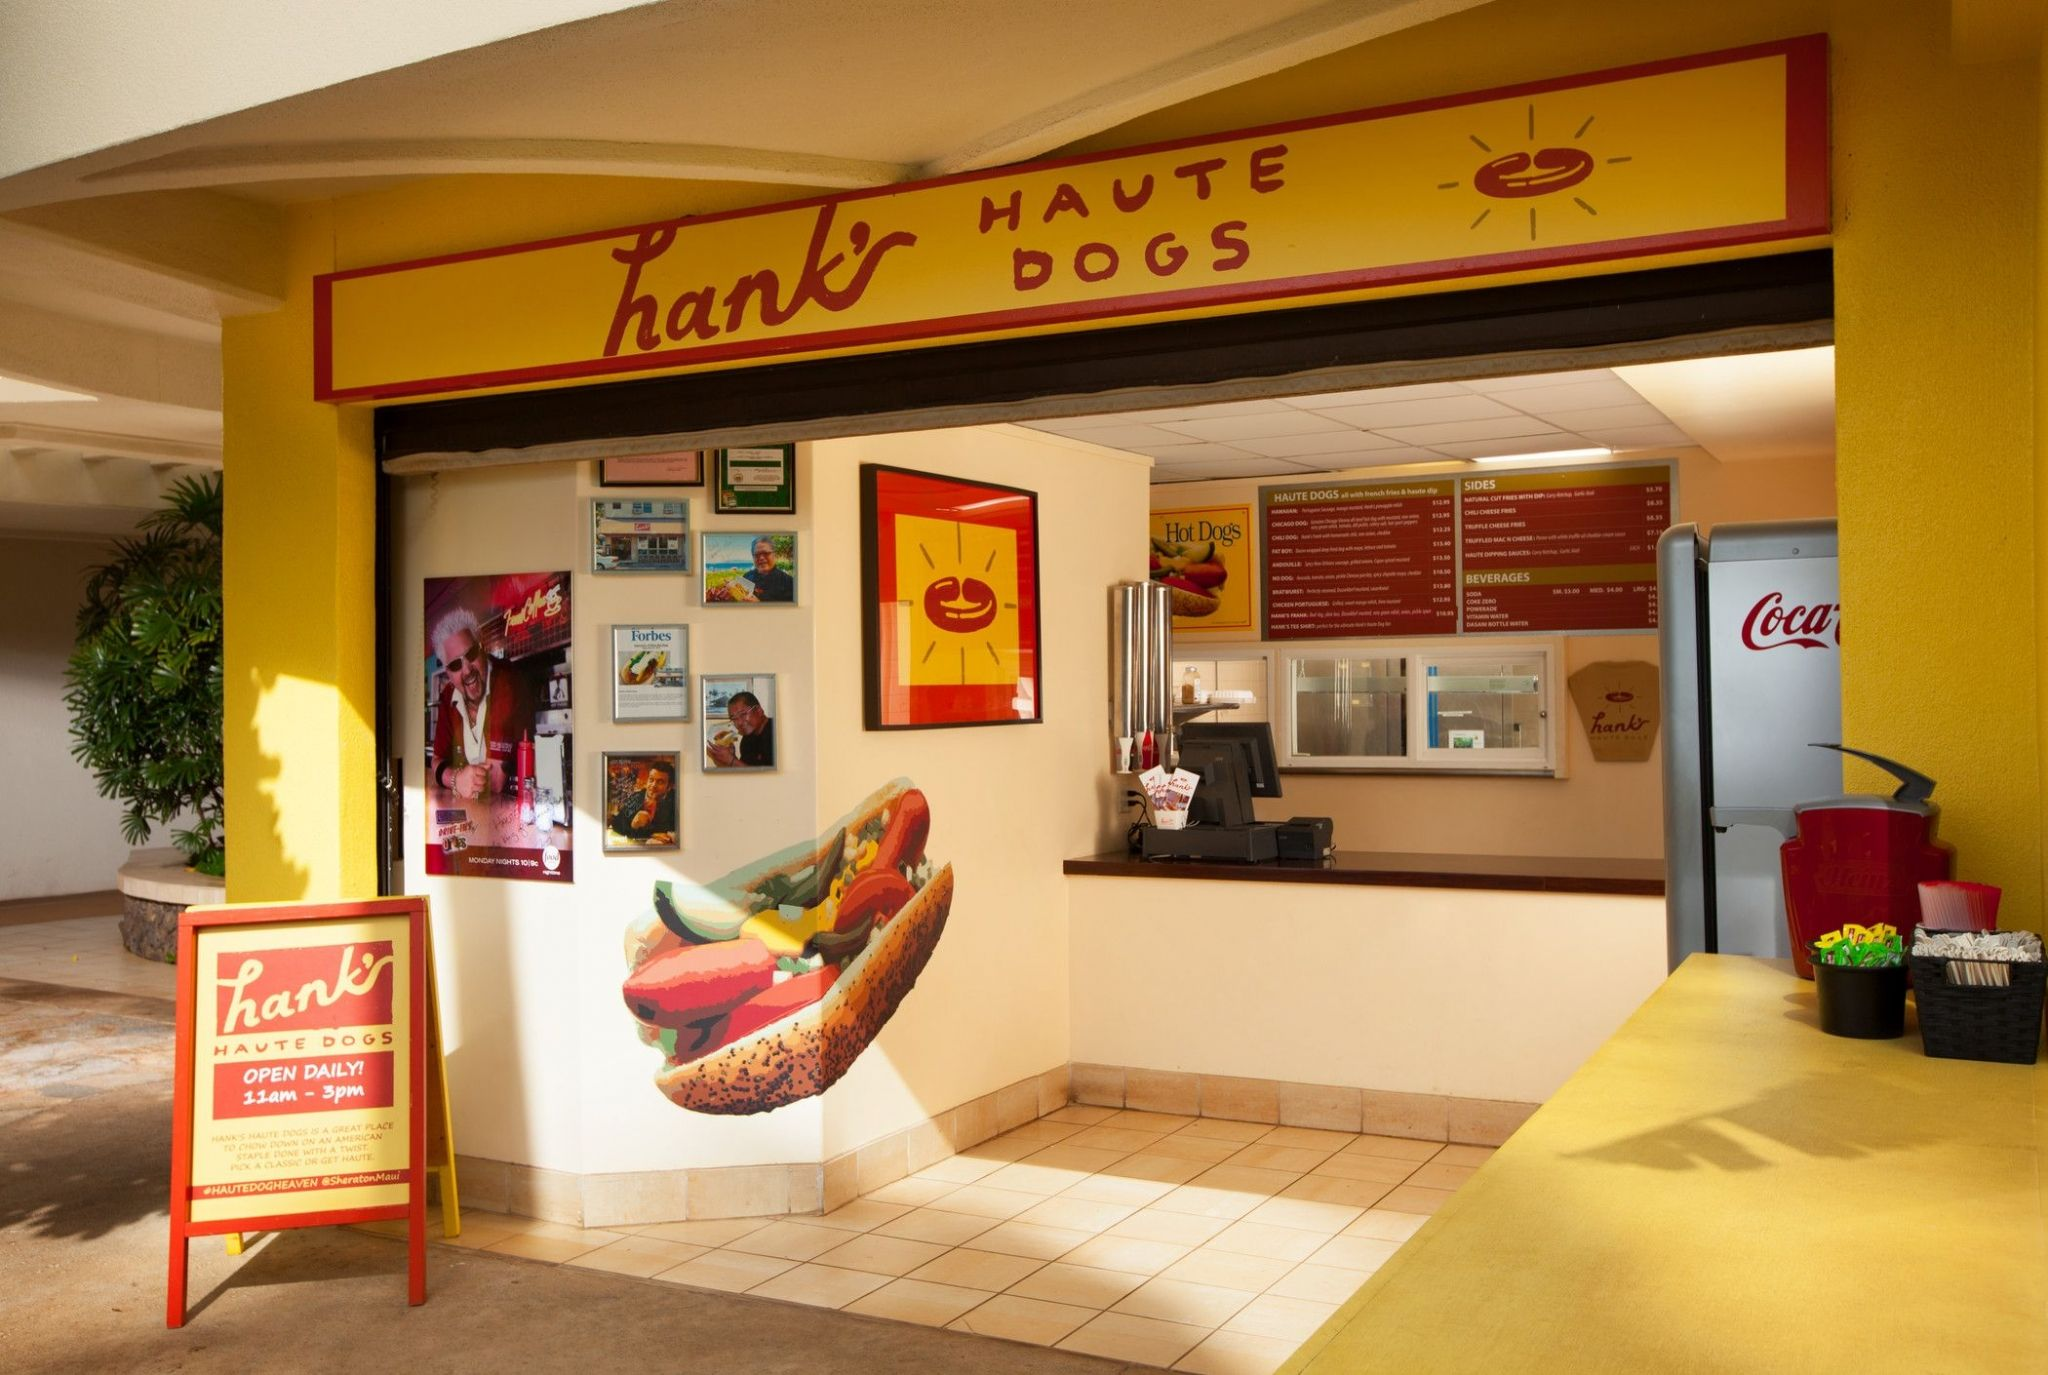 Dining in Maui - Hank's Haute Dogs